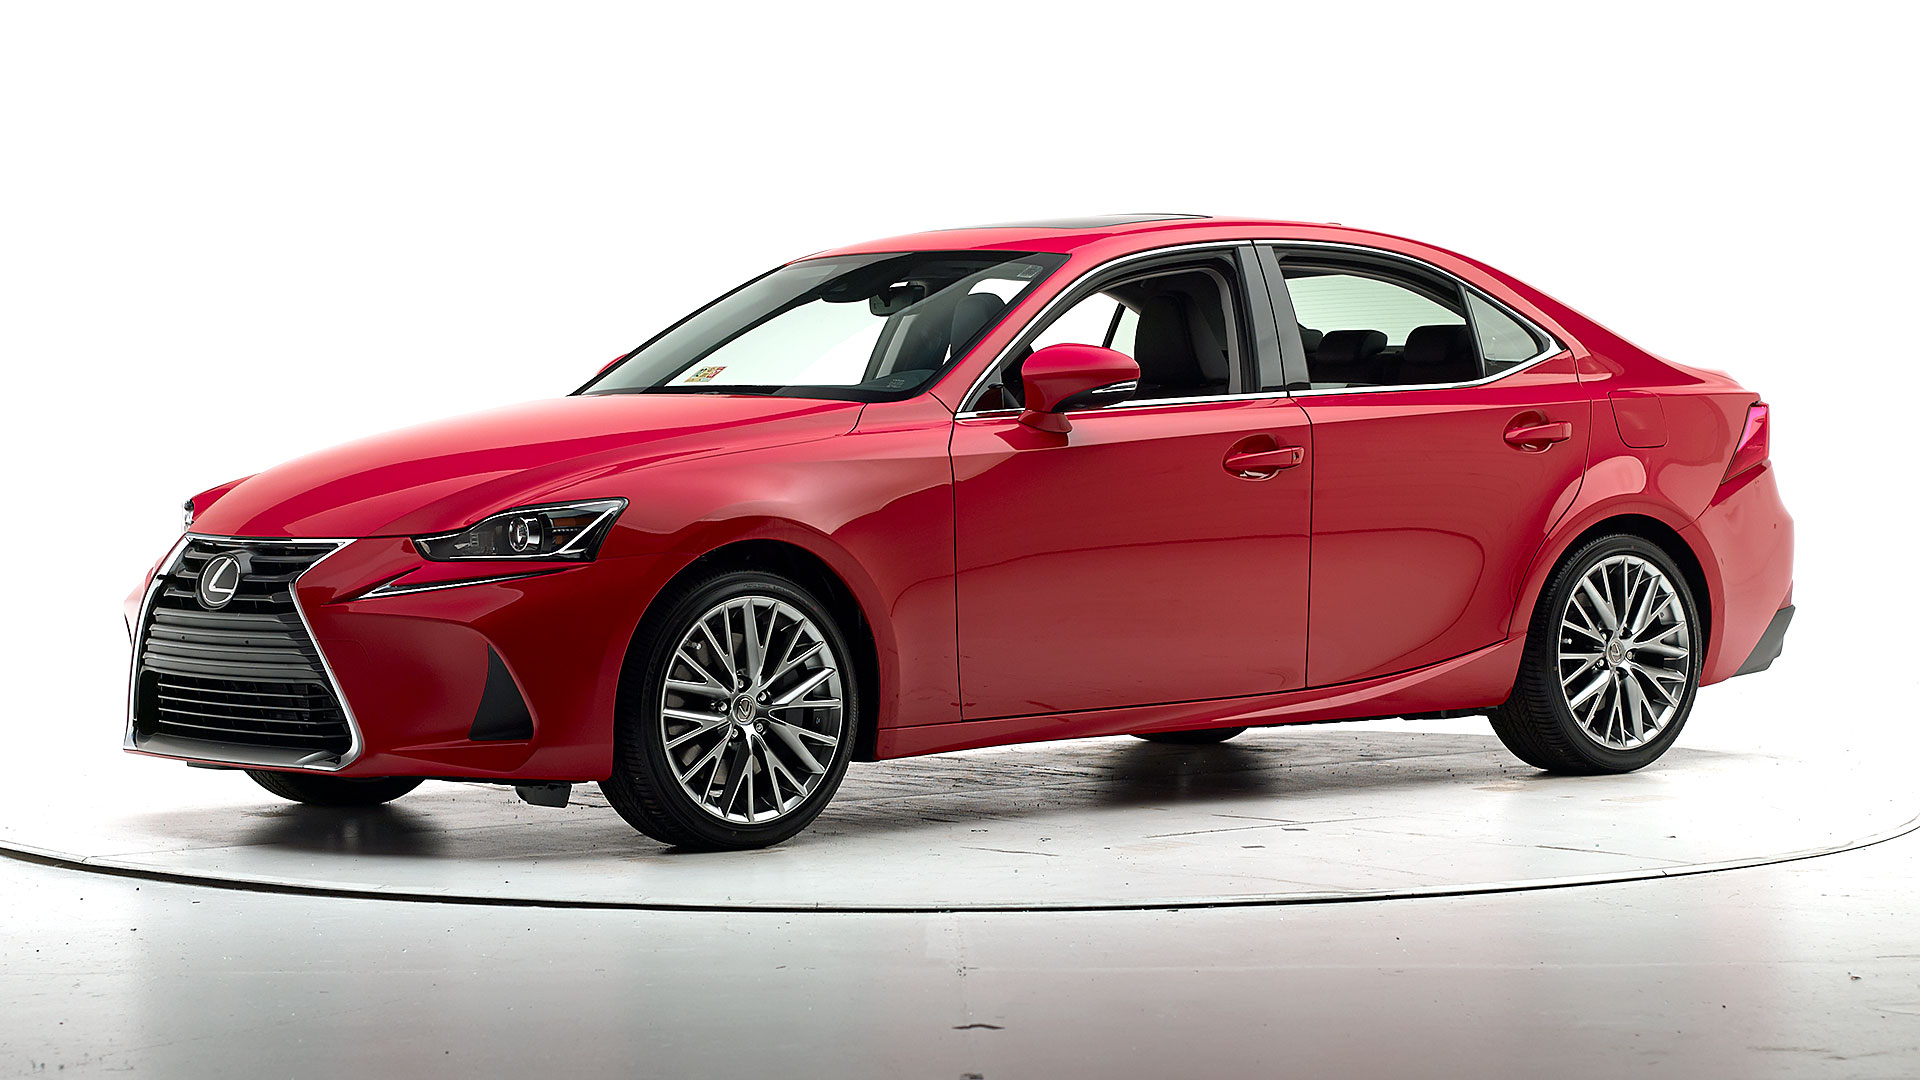 2018 Lexus IS 4-door sedan